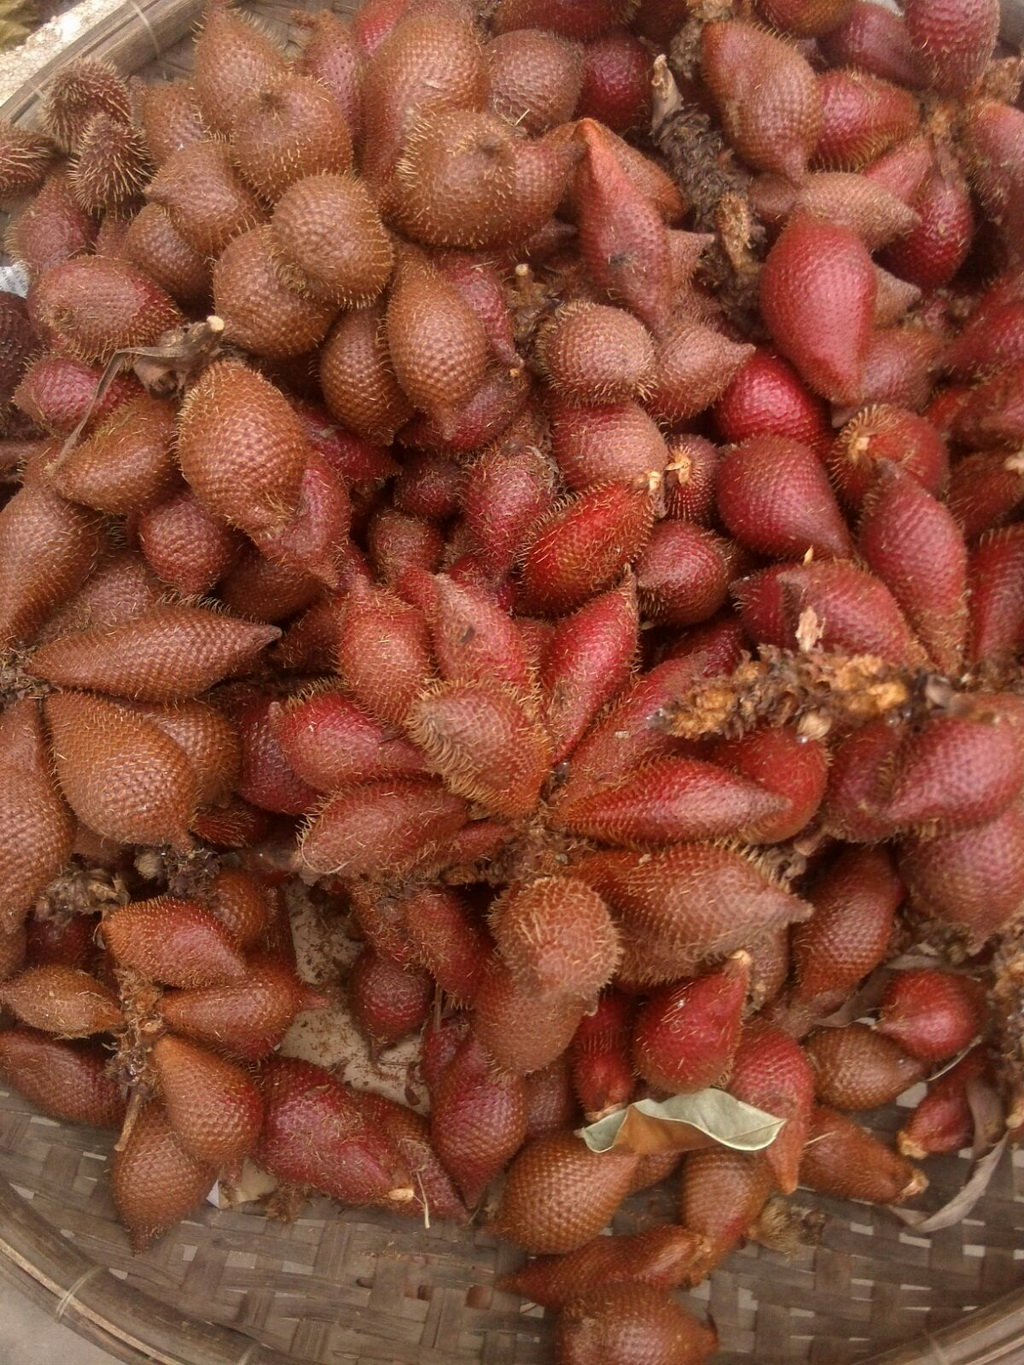 What's this exotic fruit, found in Cambodia?